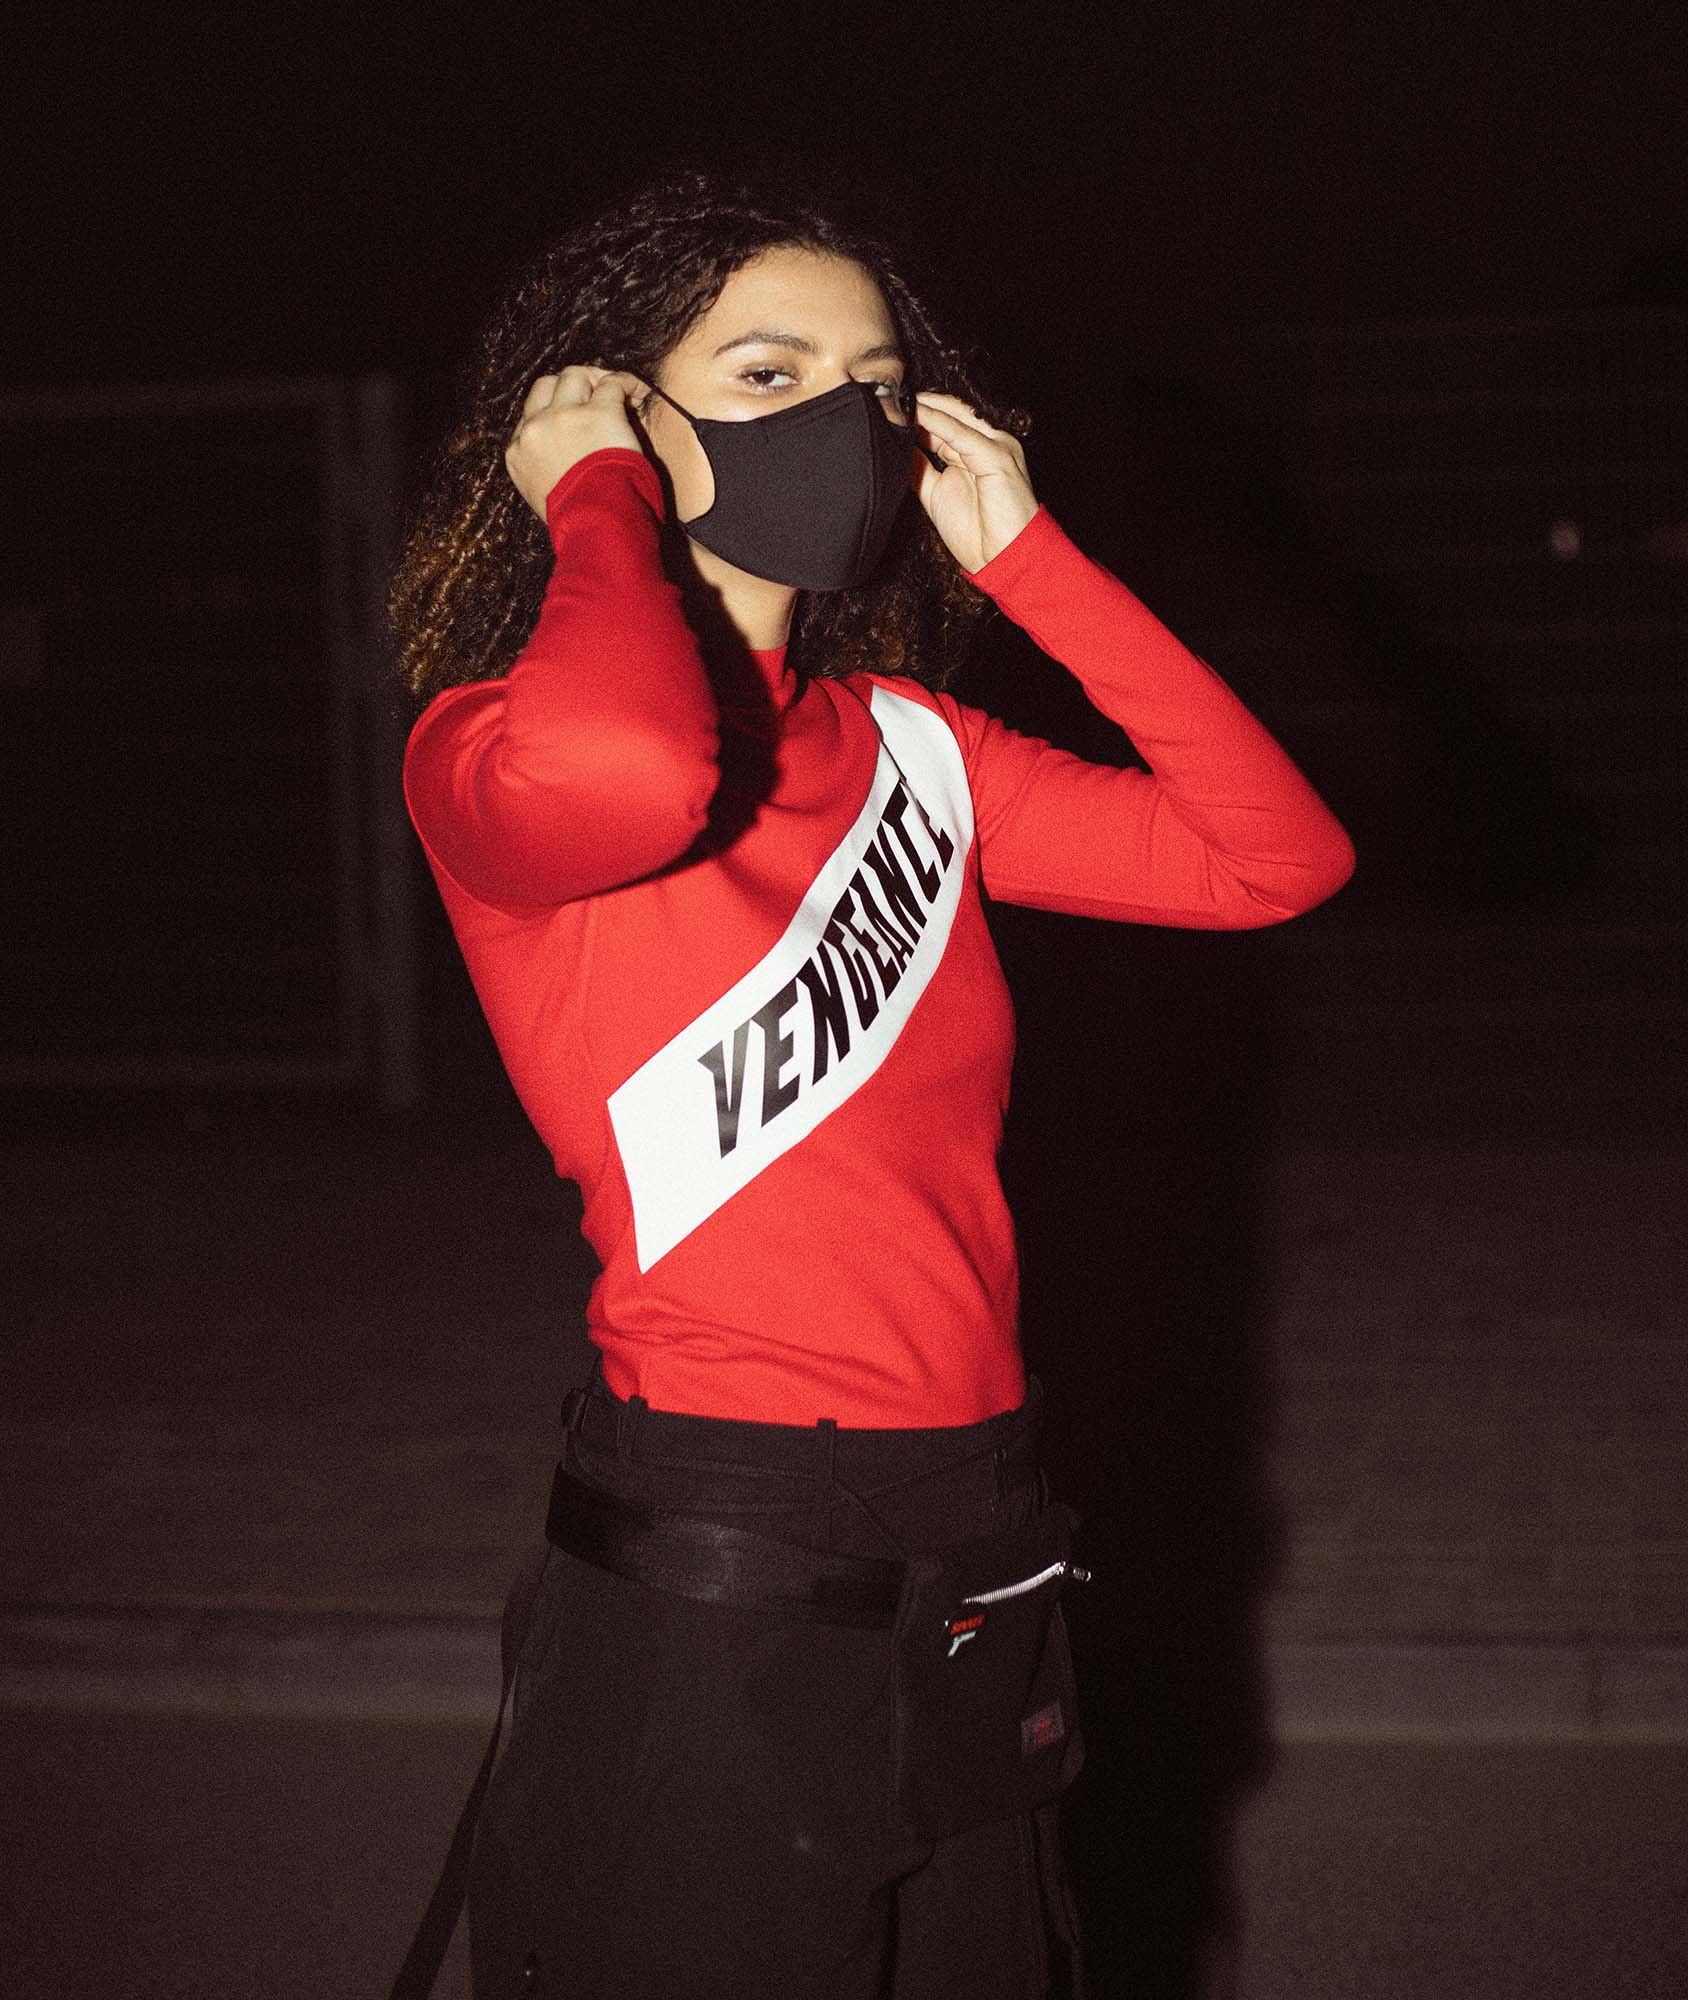 Model wearing red and black streetwear with the word vengeance written on the top